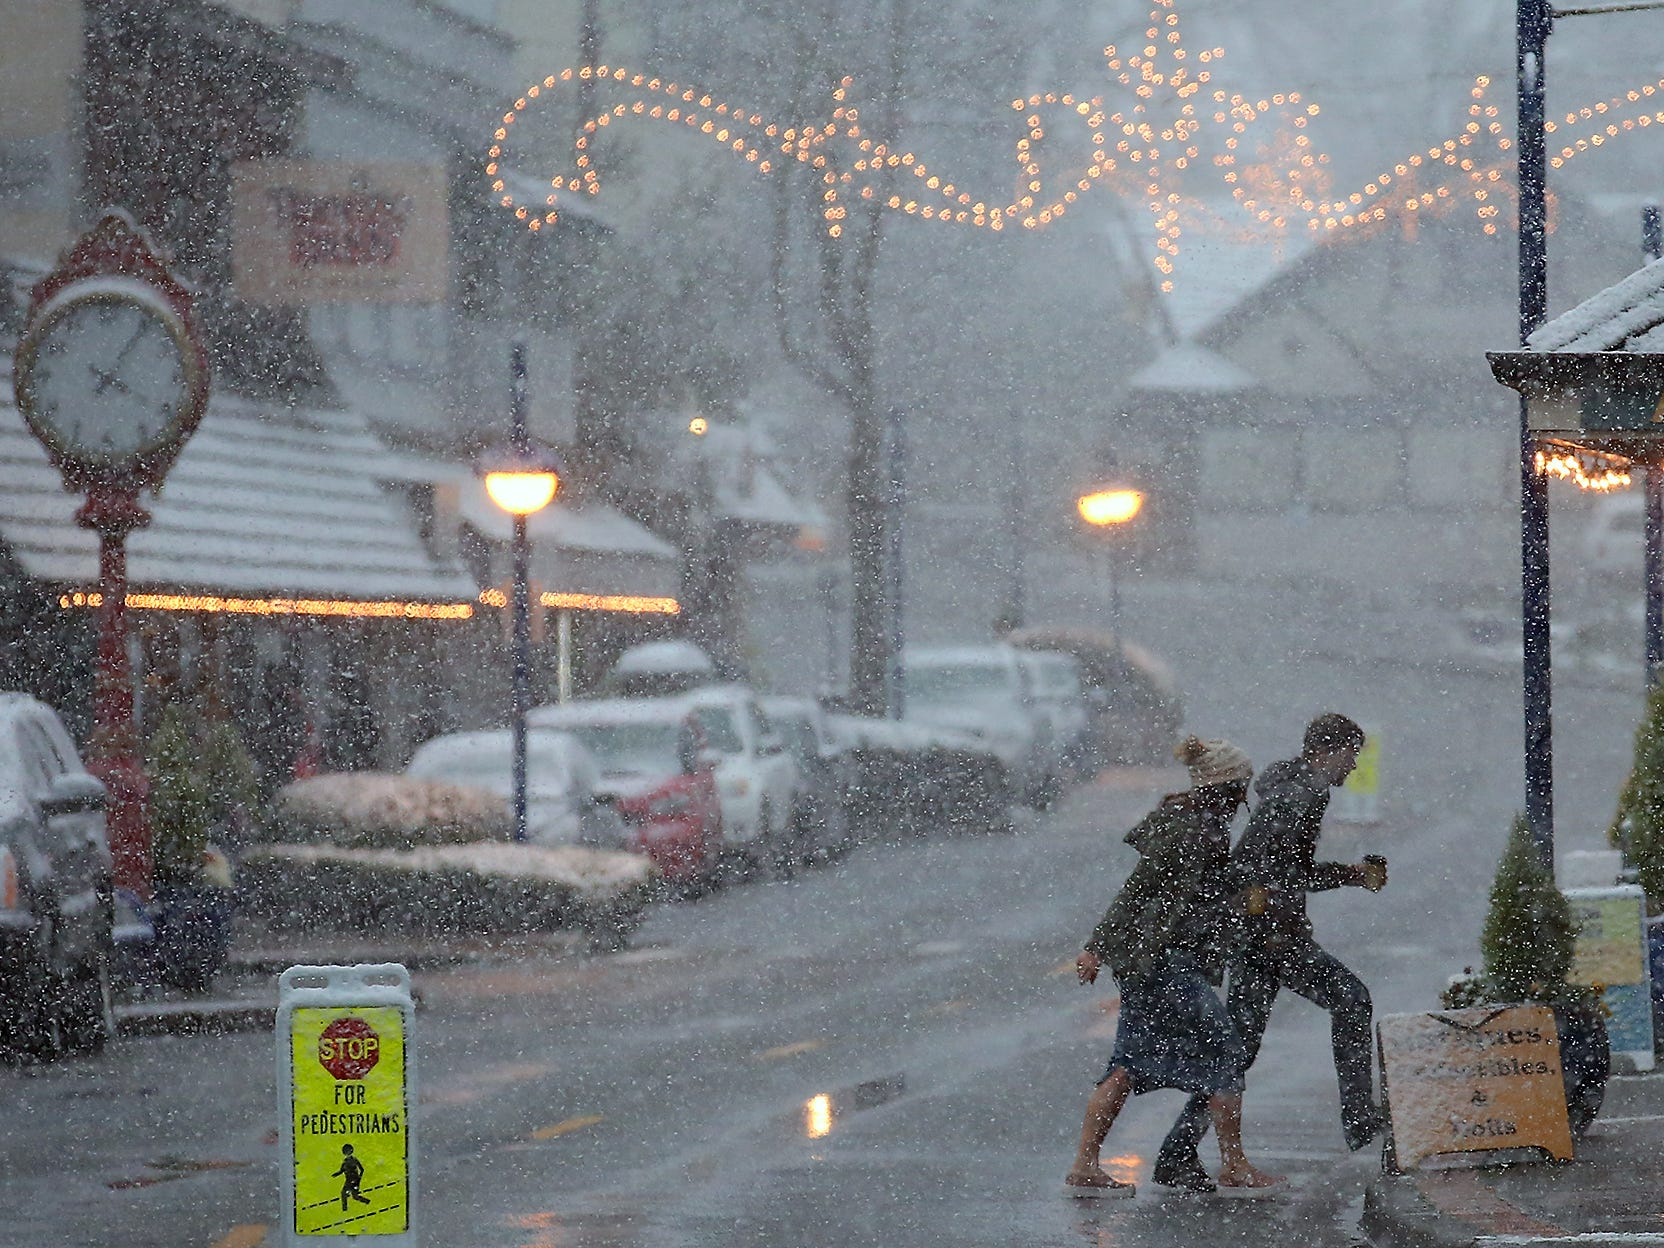 Pedestrians make their way through the heavy snow in downtown Poulsbo on Sunday, February 3, 2019.